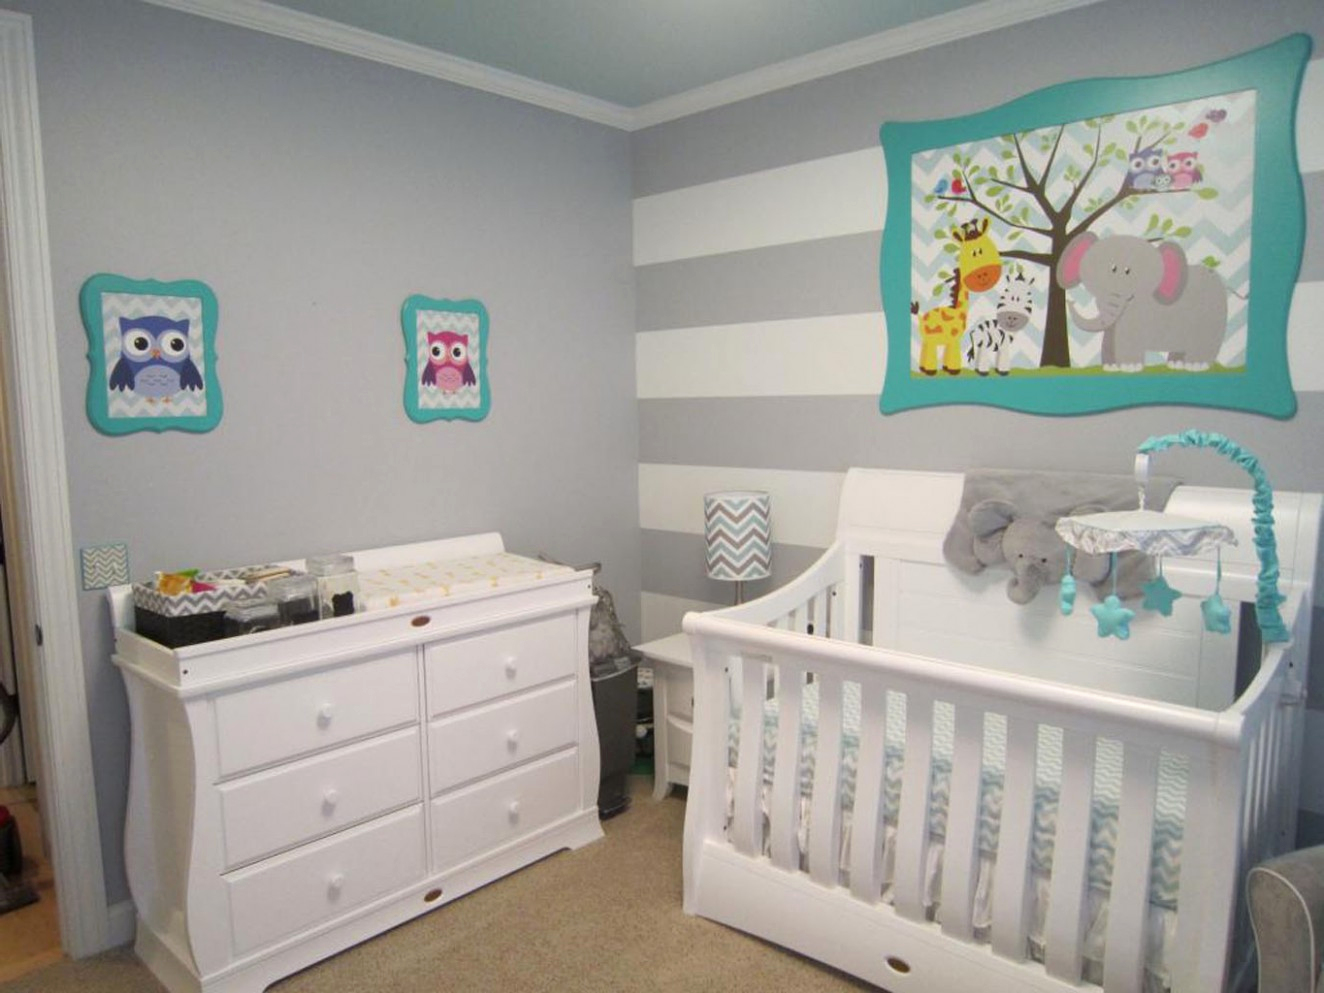 unisex-baby-room-decor-fresh-design-uni-baby-room-ideas-of-unisex-baby-room-decor.jpg